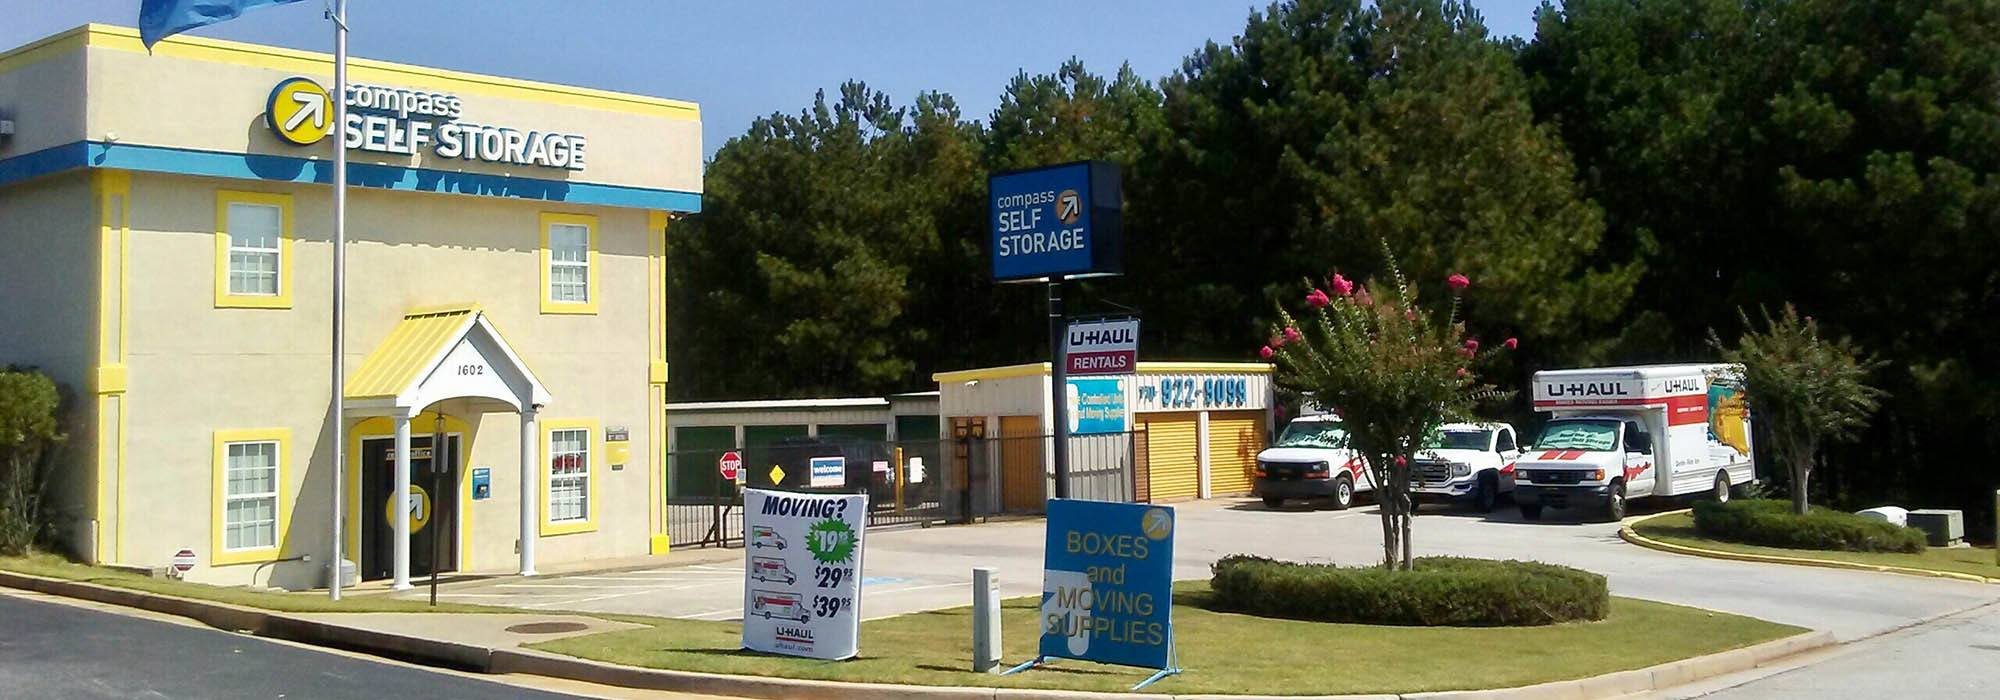 Self storage in Conyers GA